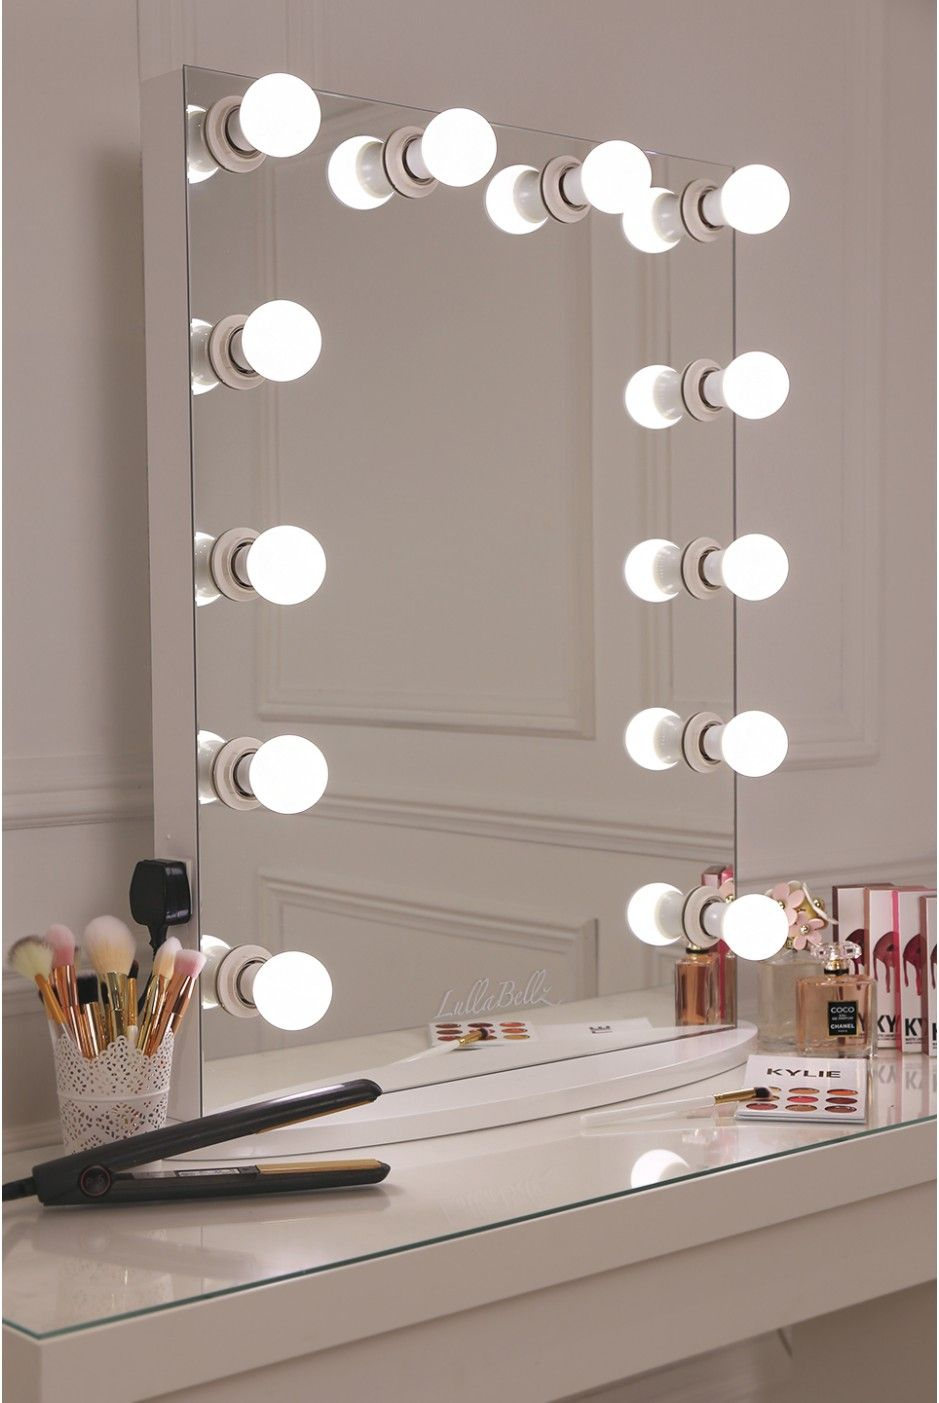 Vanity Mirror Led Light Bulbs : LULLABELLZ Hollywood Glow Vanity Mirror LED Bulbs. This is what make up dreams are made of girls ...